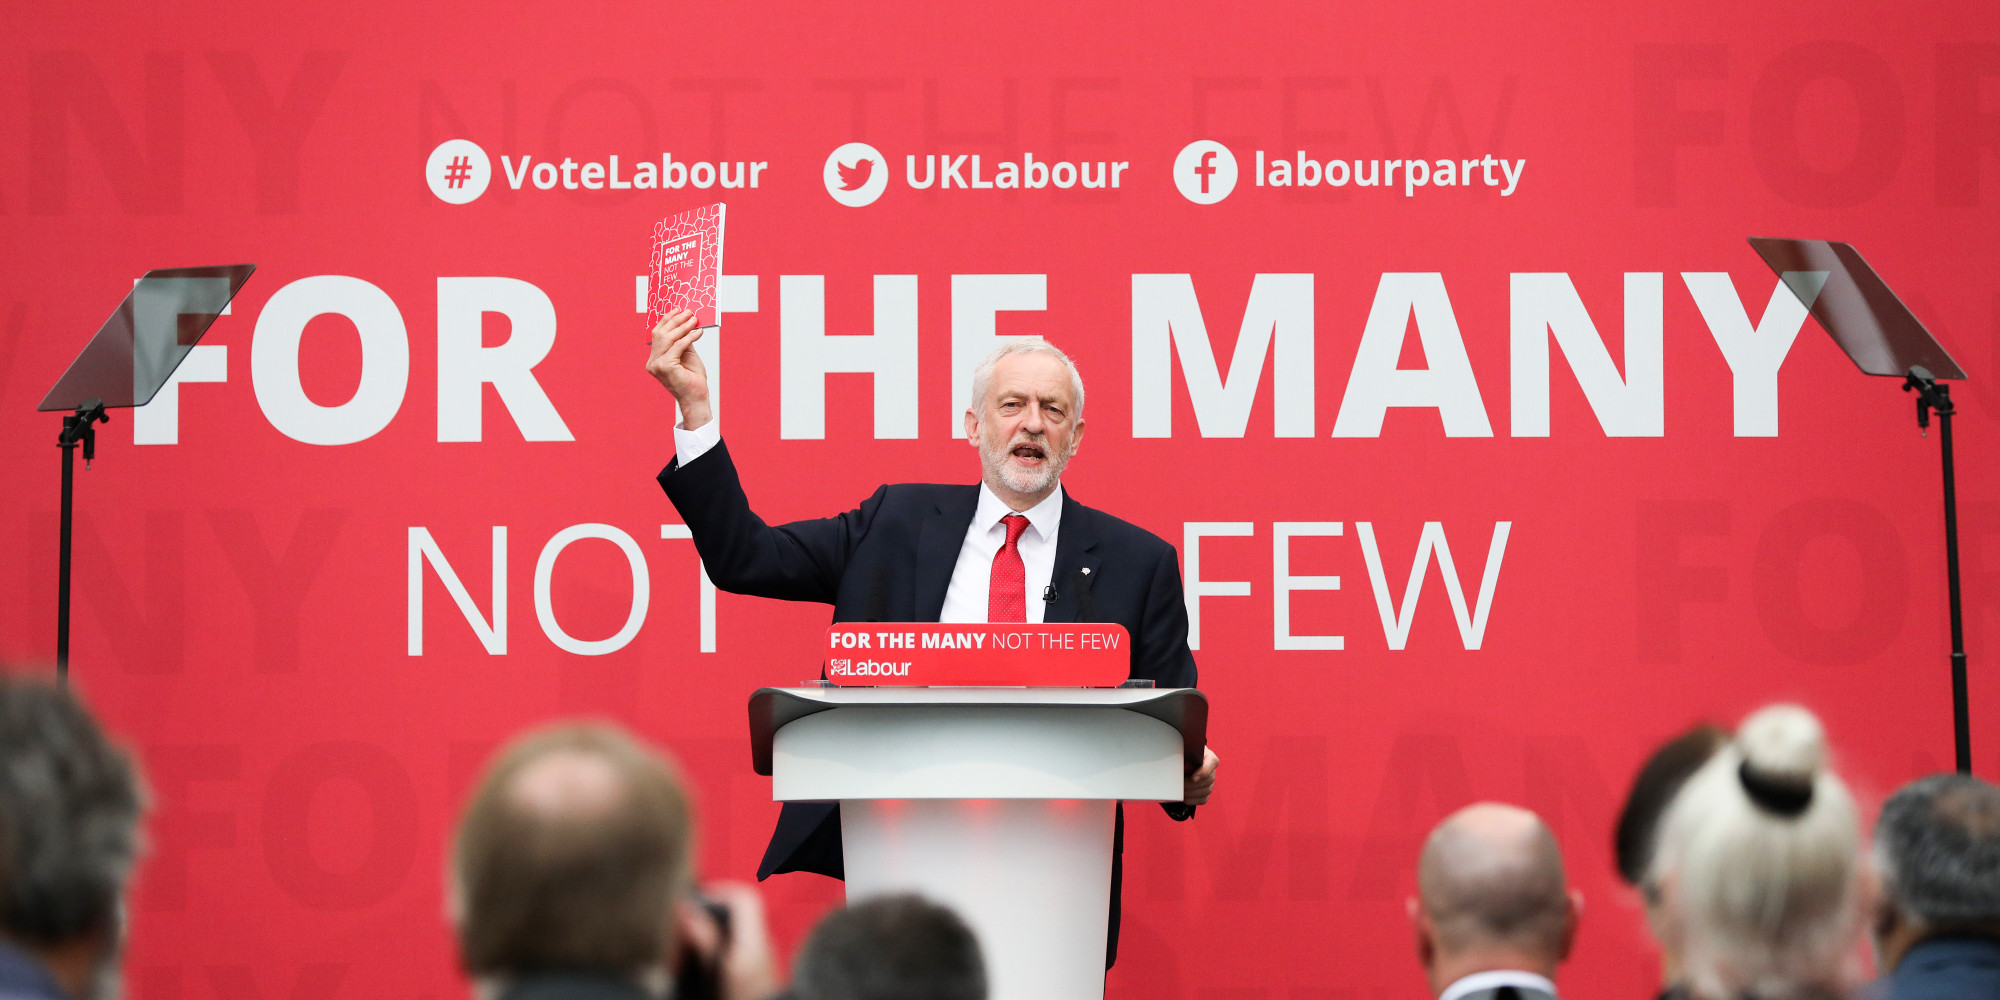 Loud & Clear — British Election Upset? Corbyn and the Left Surging